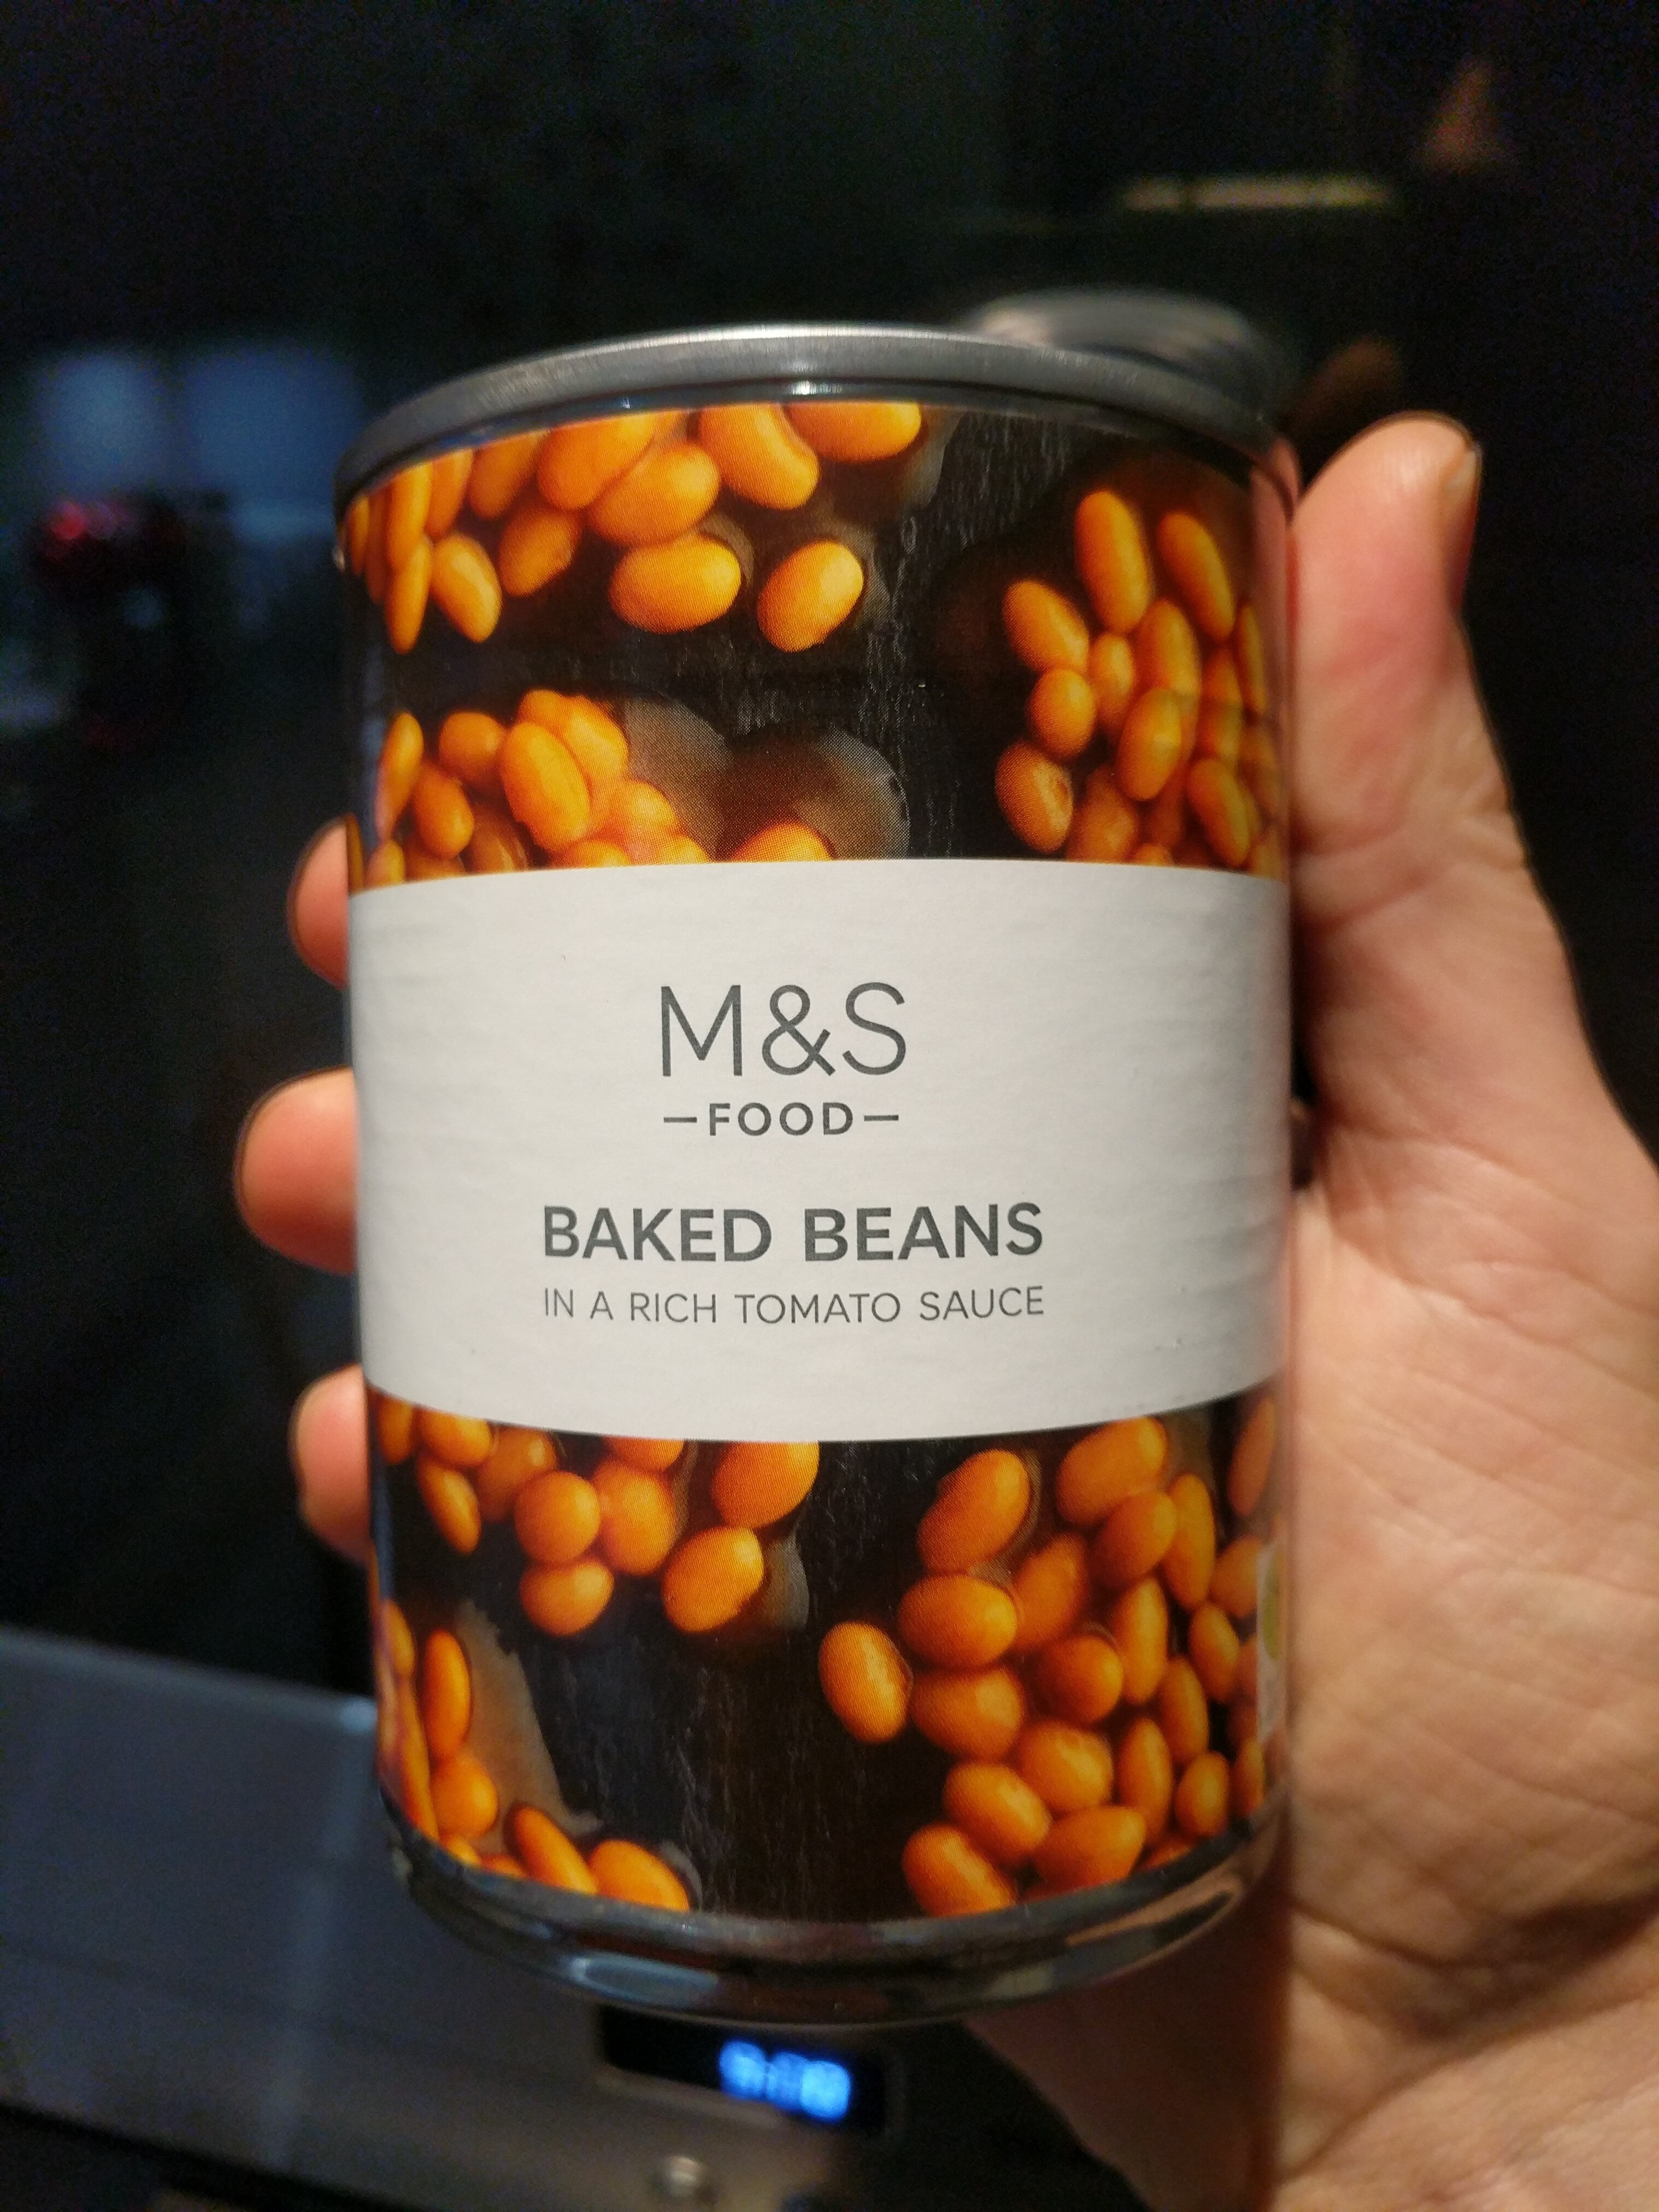 Baked Beans in a rich tomato sauce - Product - en